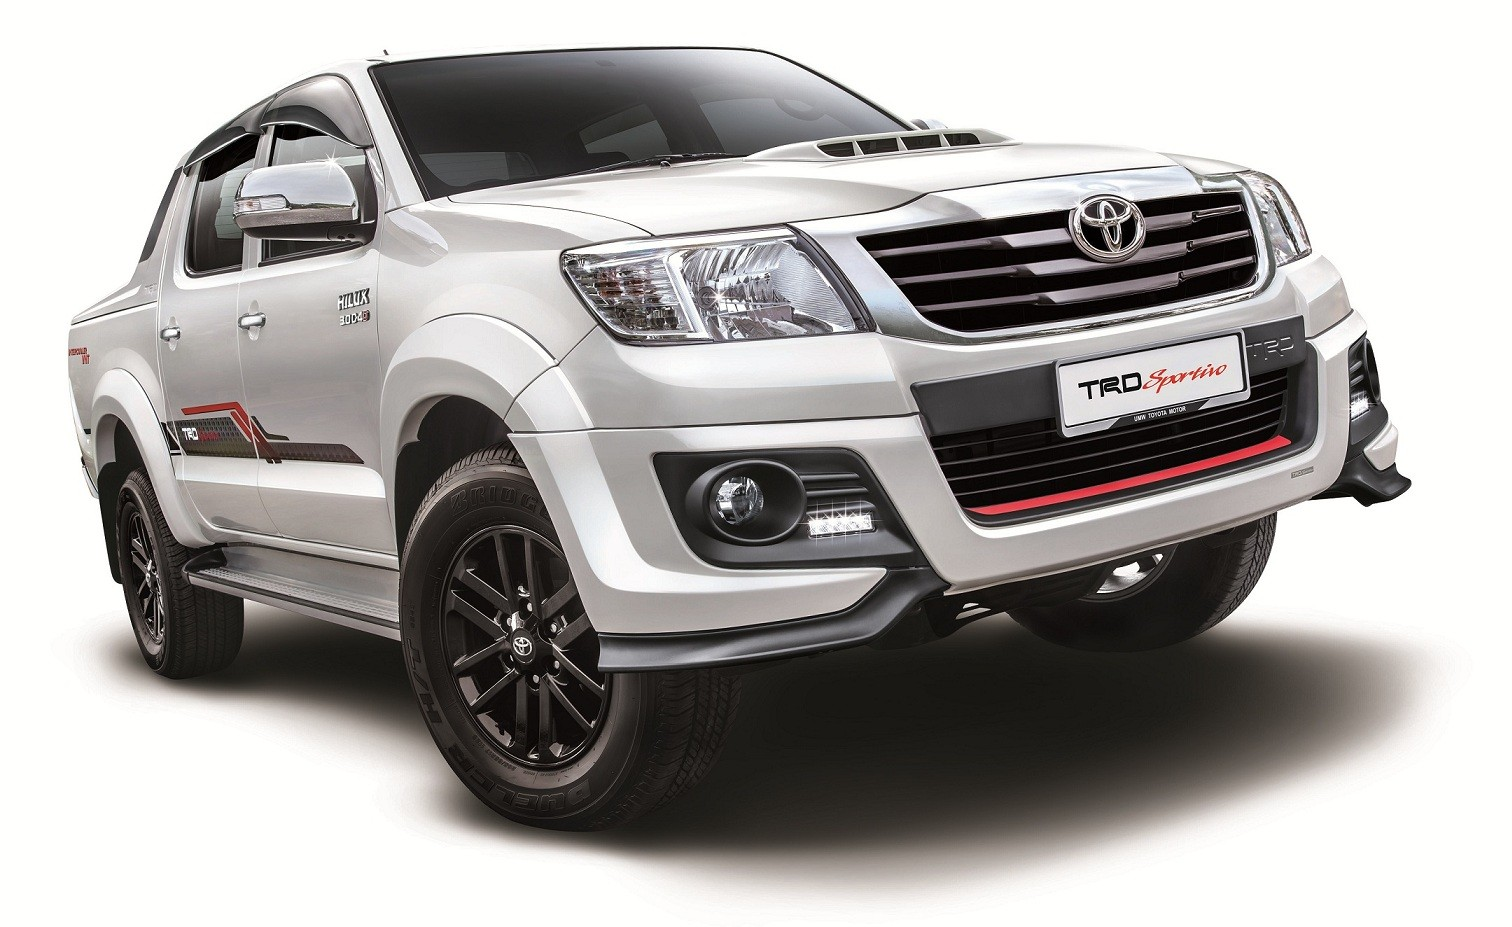 2015 Toyota Hilux updated, new TRD Sportivo variant